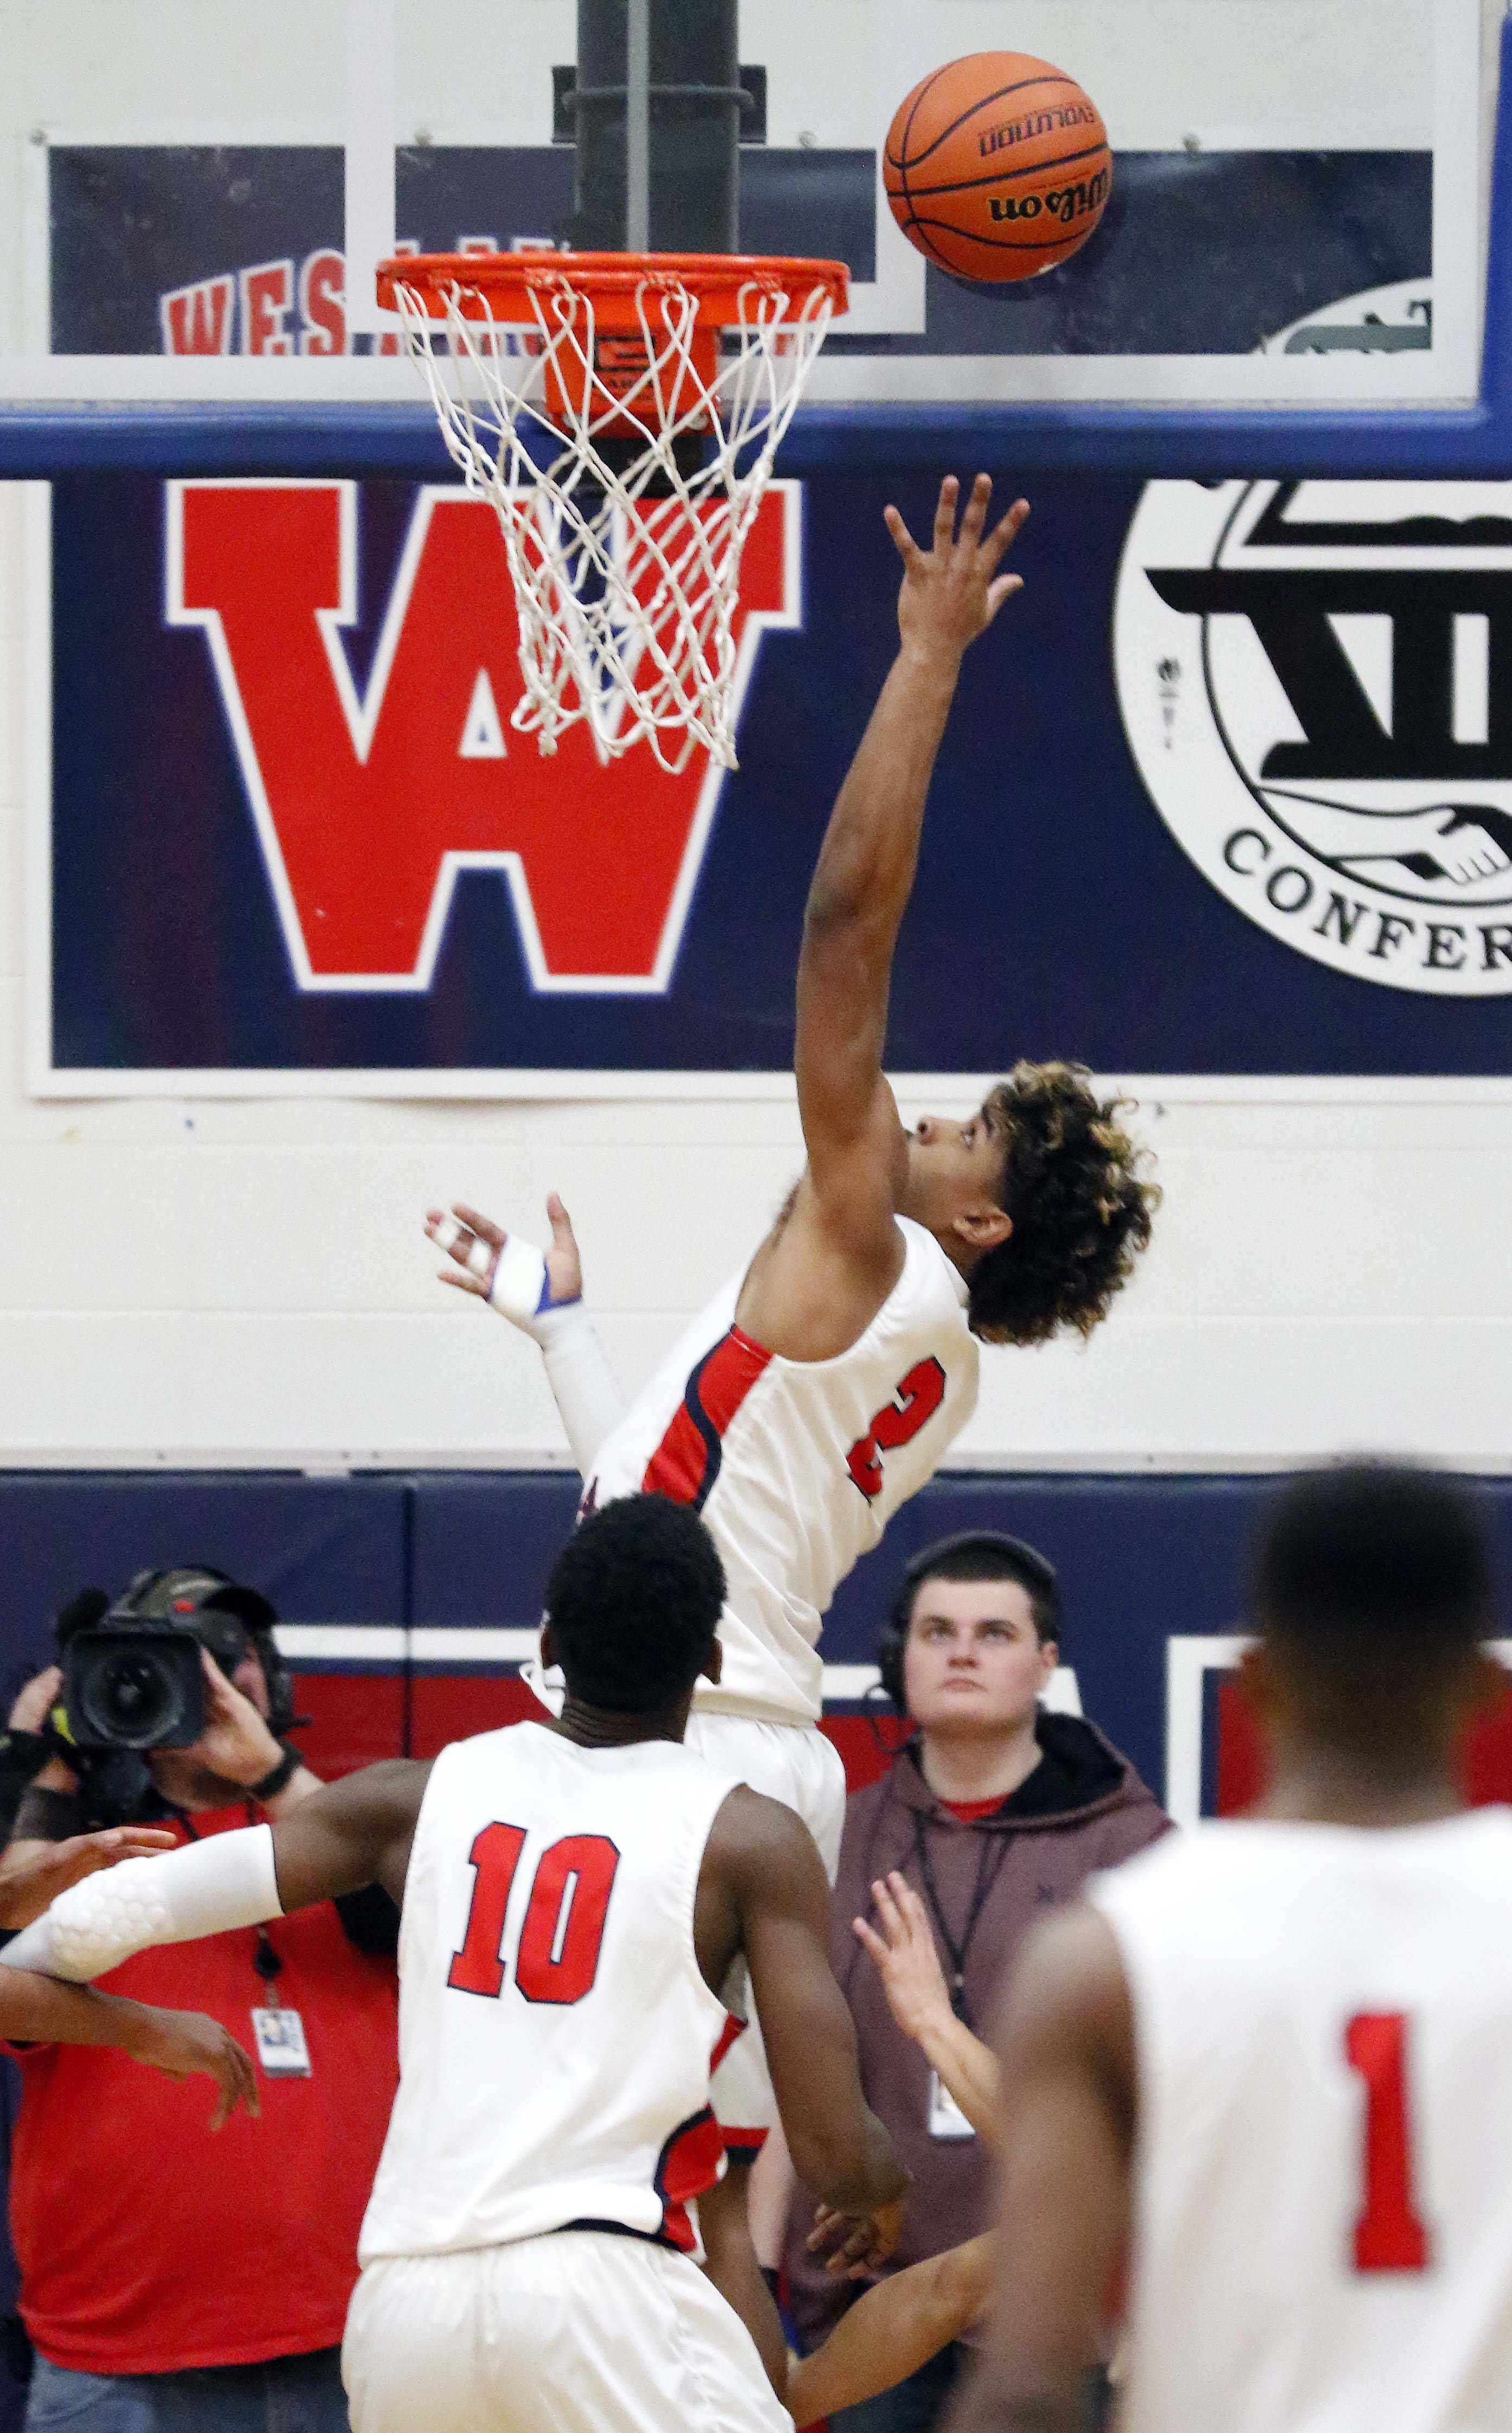 West Aurora guard Camron Donatlan goes to the hoop Saturday during basketball at West Aurora High School.